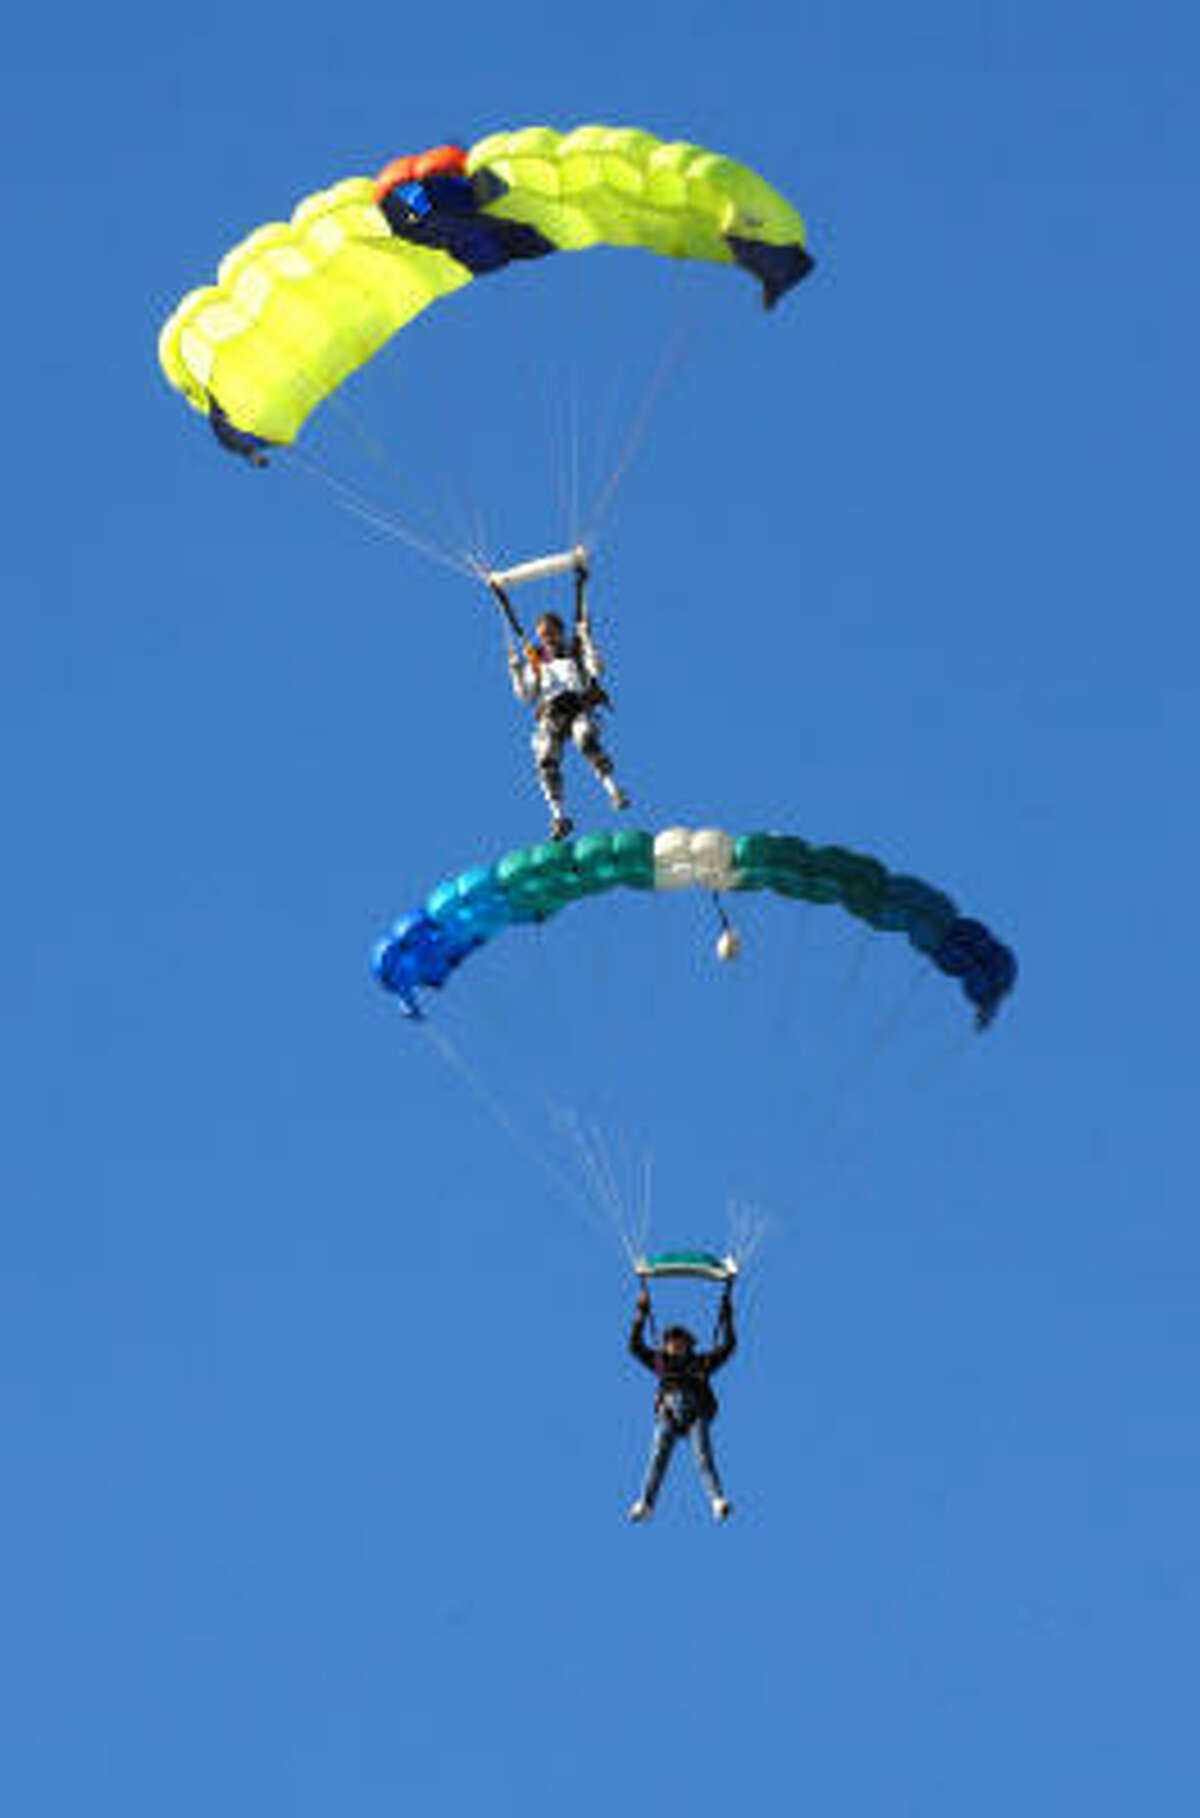 When balloons aren't flying, skydivers give demonstrations.